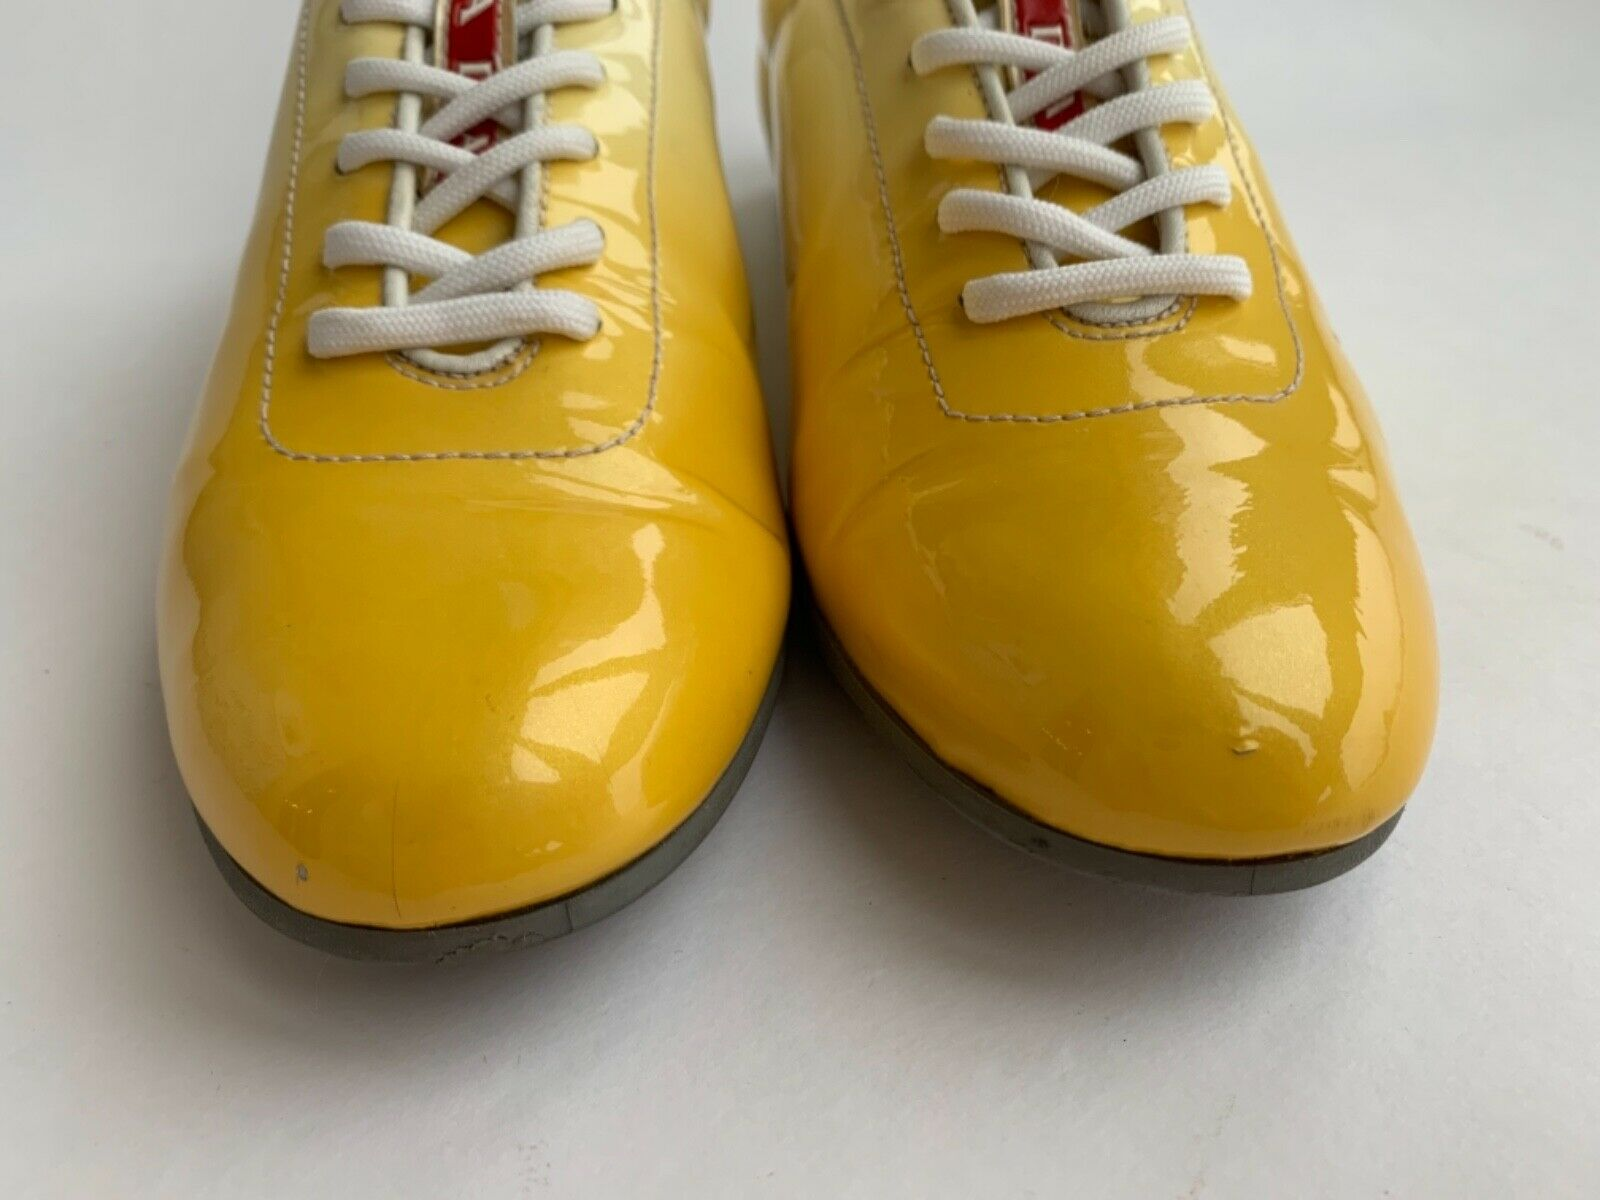 Prada Prada Prada Yellow Leather Ombre Sneakers Trainers 777302